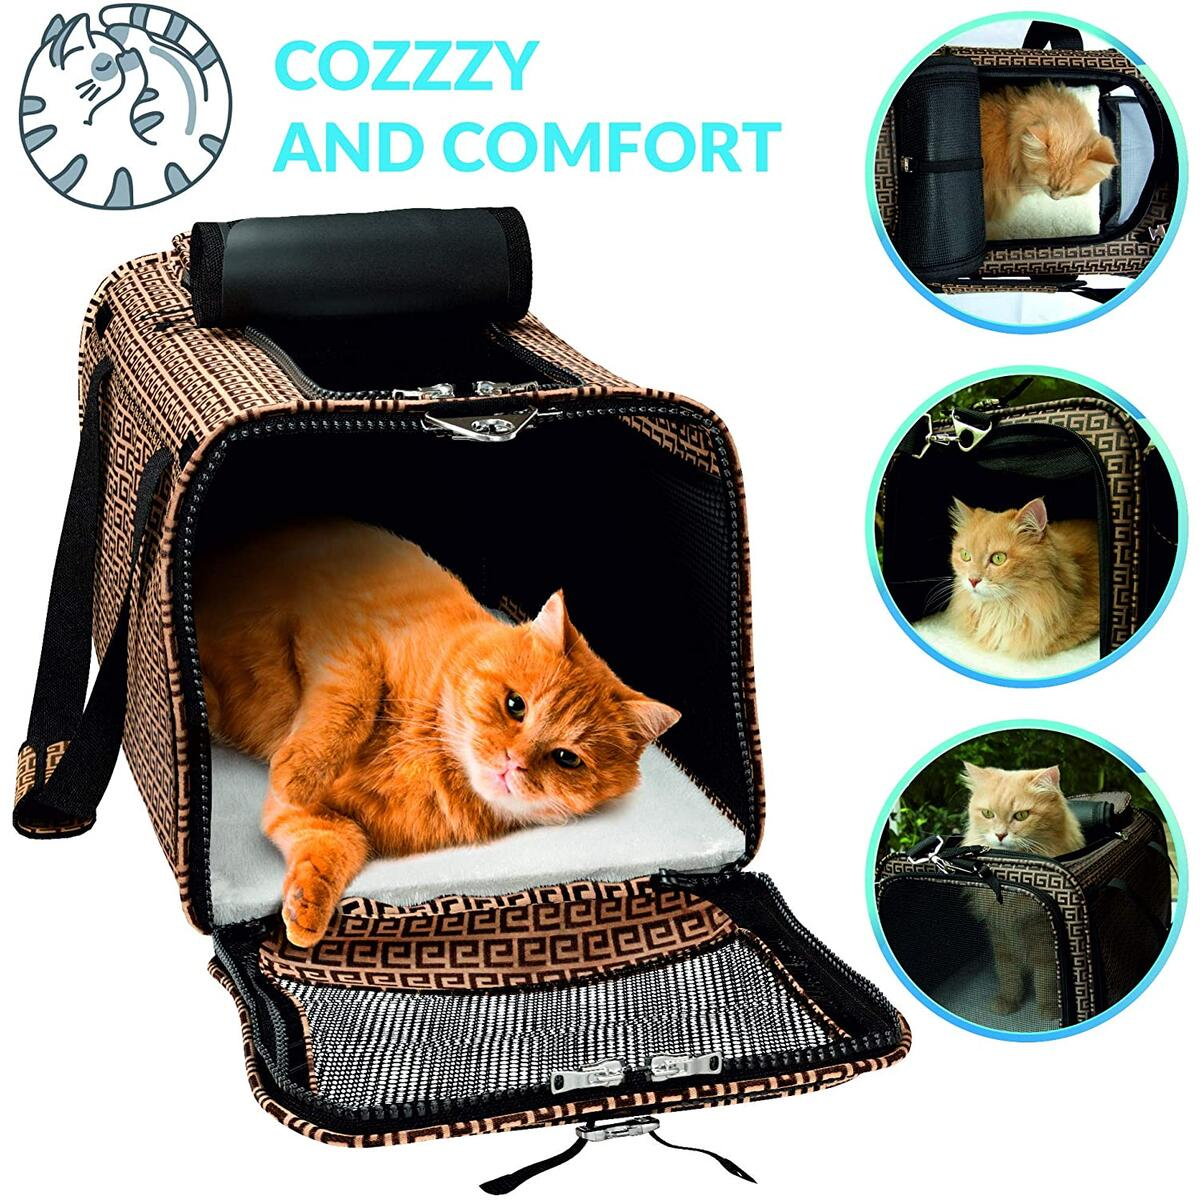 Brown Pet Travel Carrier for Small Dogs, Cats, other Small Pets